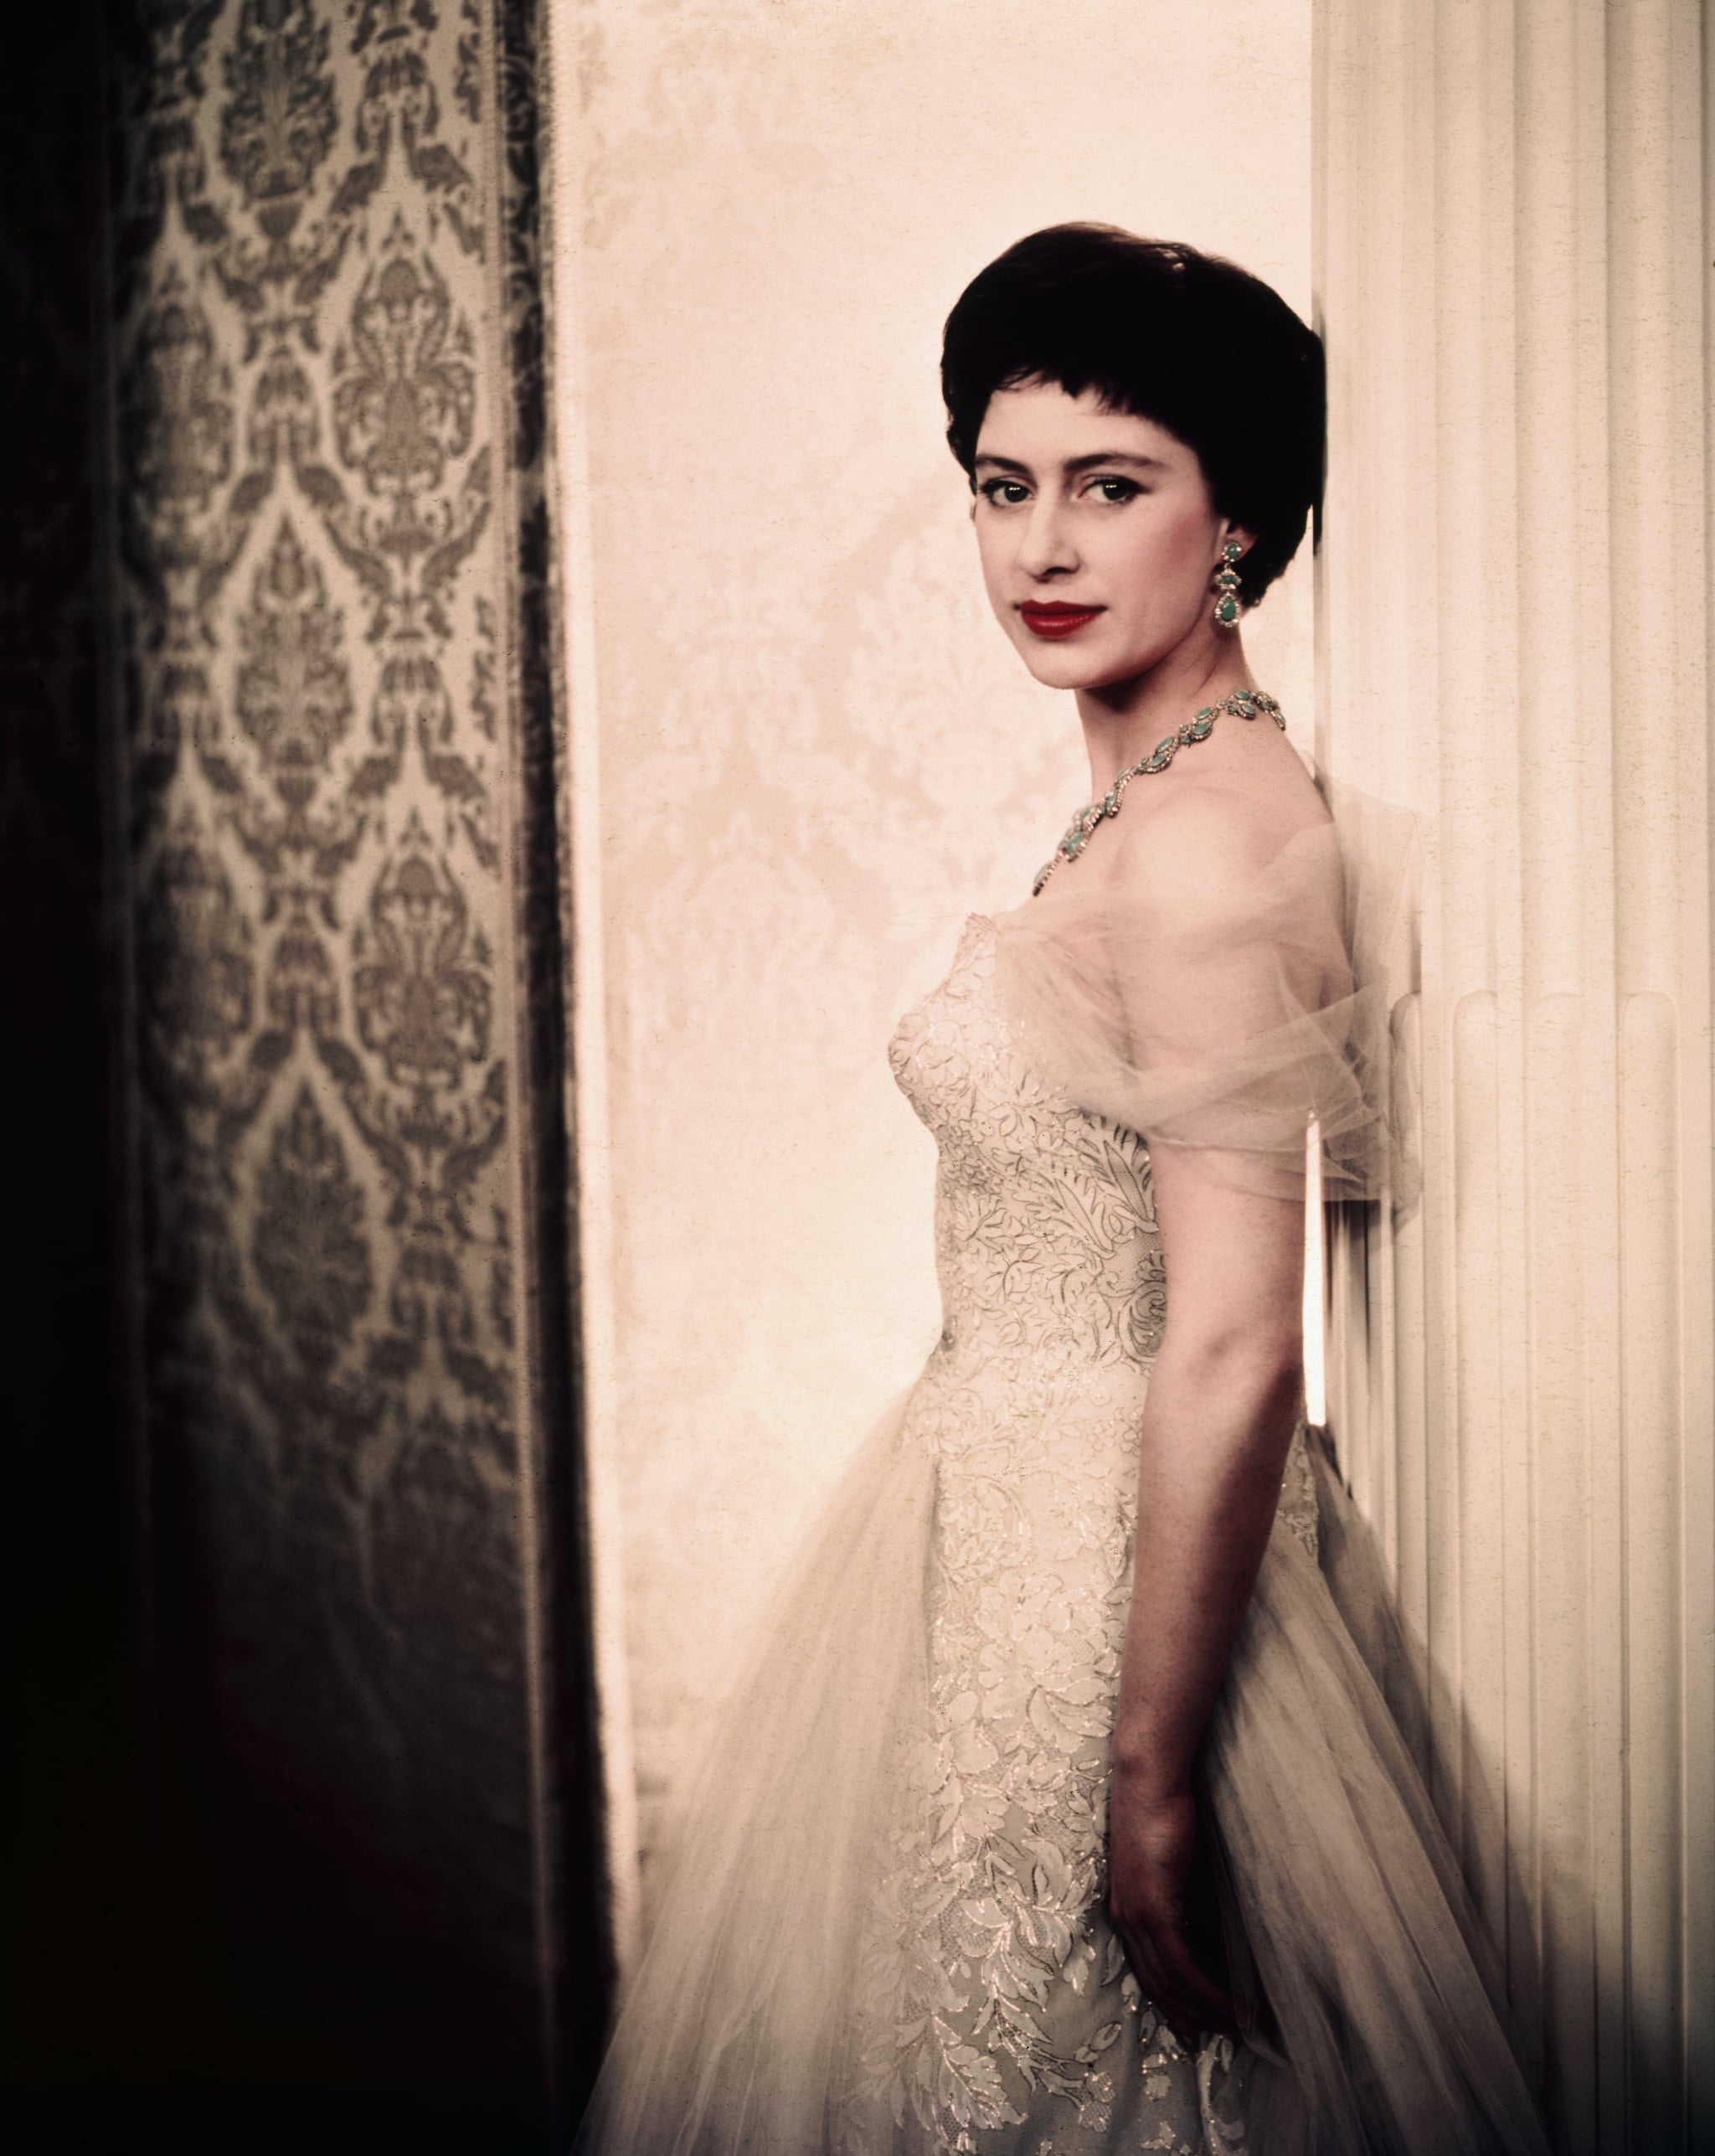 4/14/1958- Princess Margaret of England, closeup portrait for release. UPI colour slide.